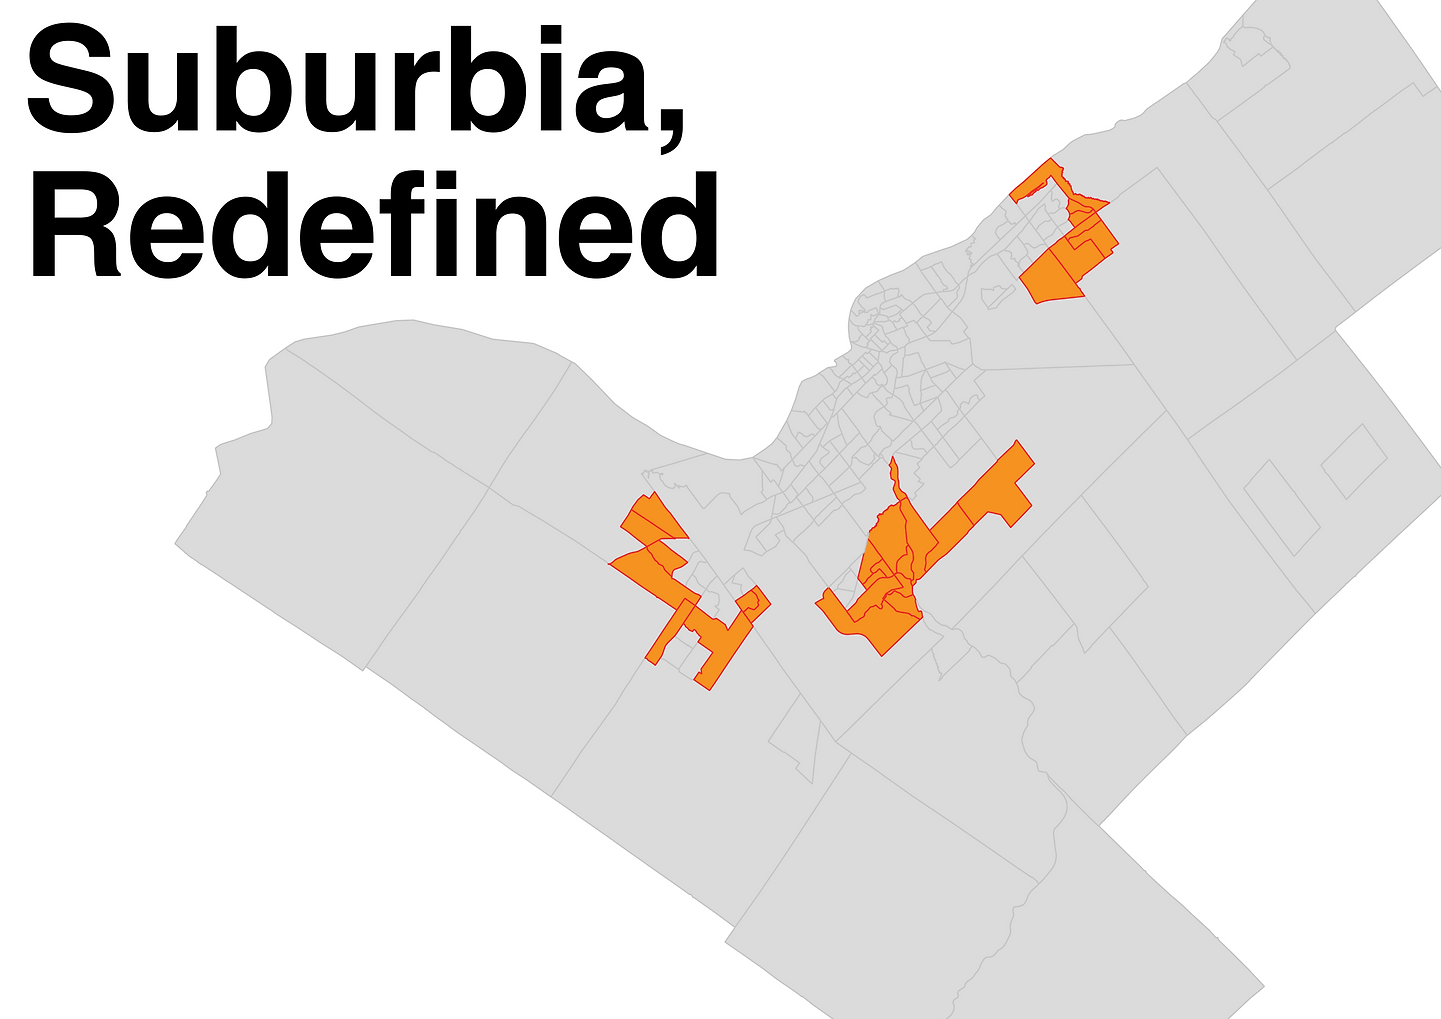 SuburbiaRedefined.png